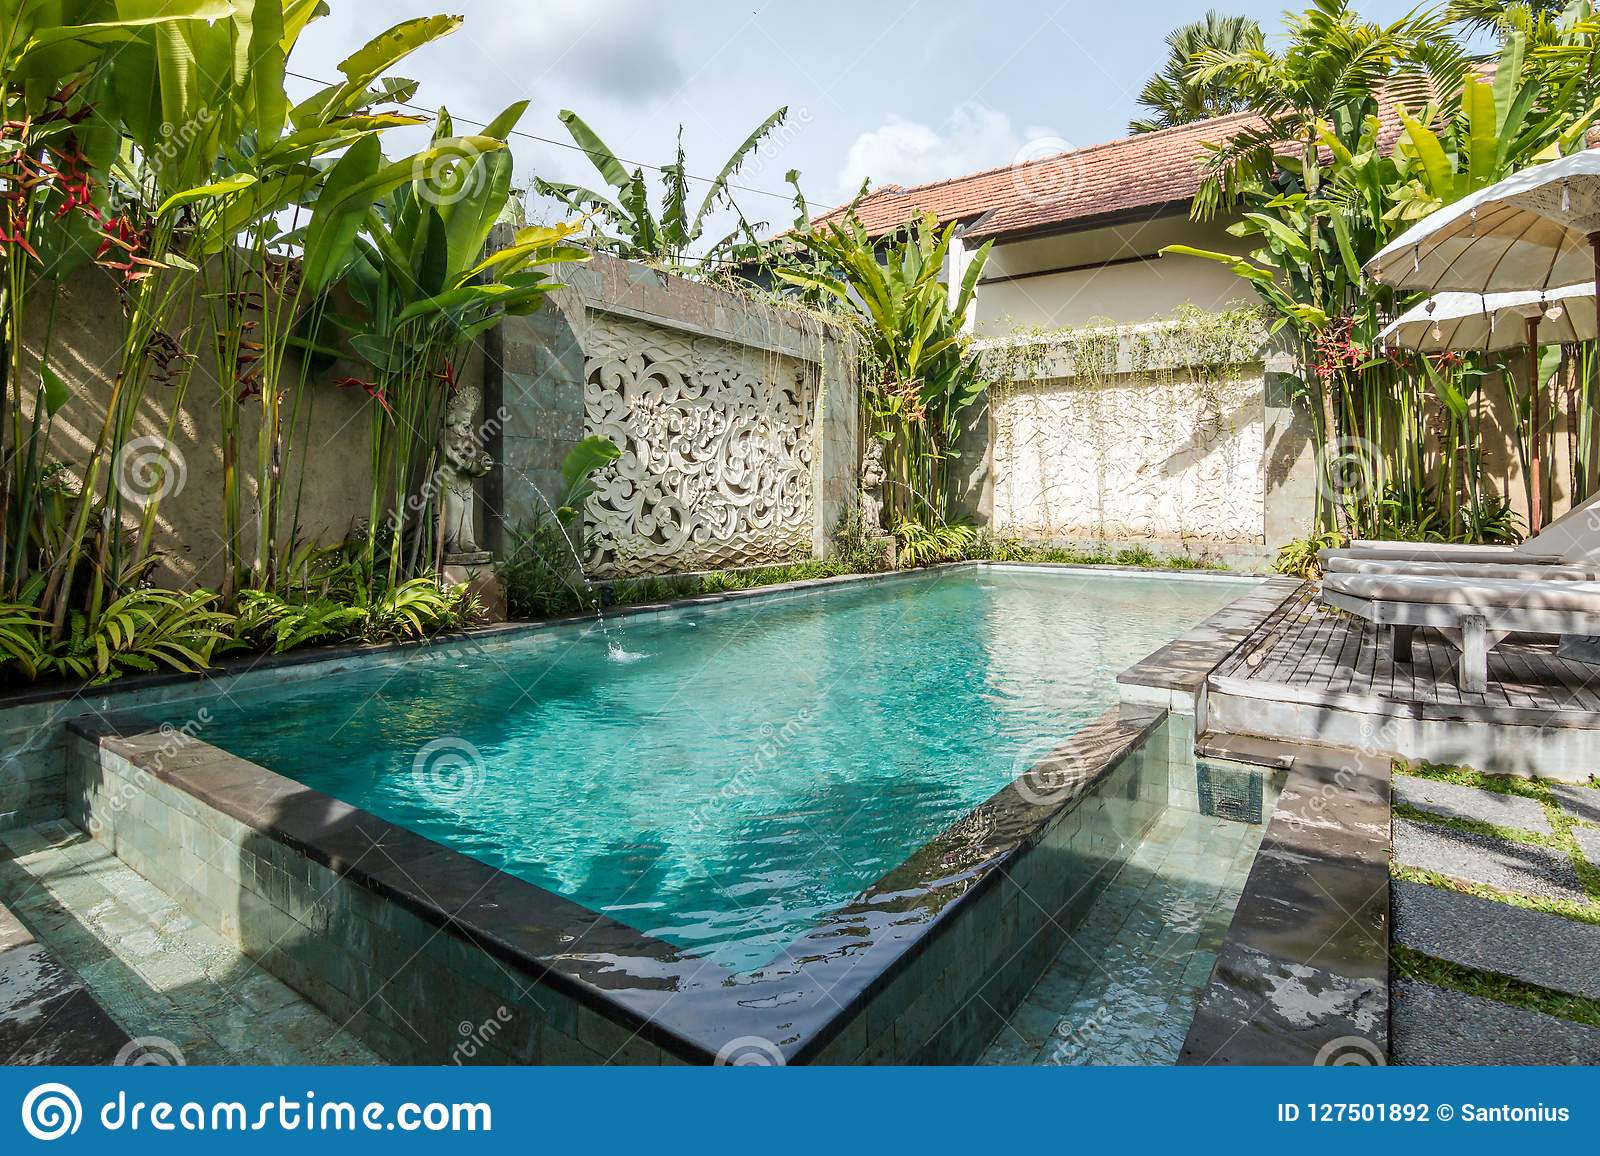 Beautiful And Tropical Swimming Pool Stock Photo - Image of ...